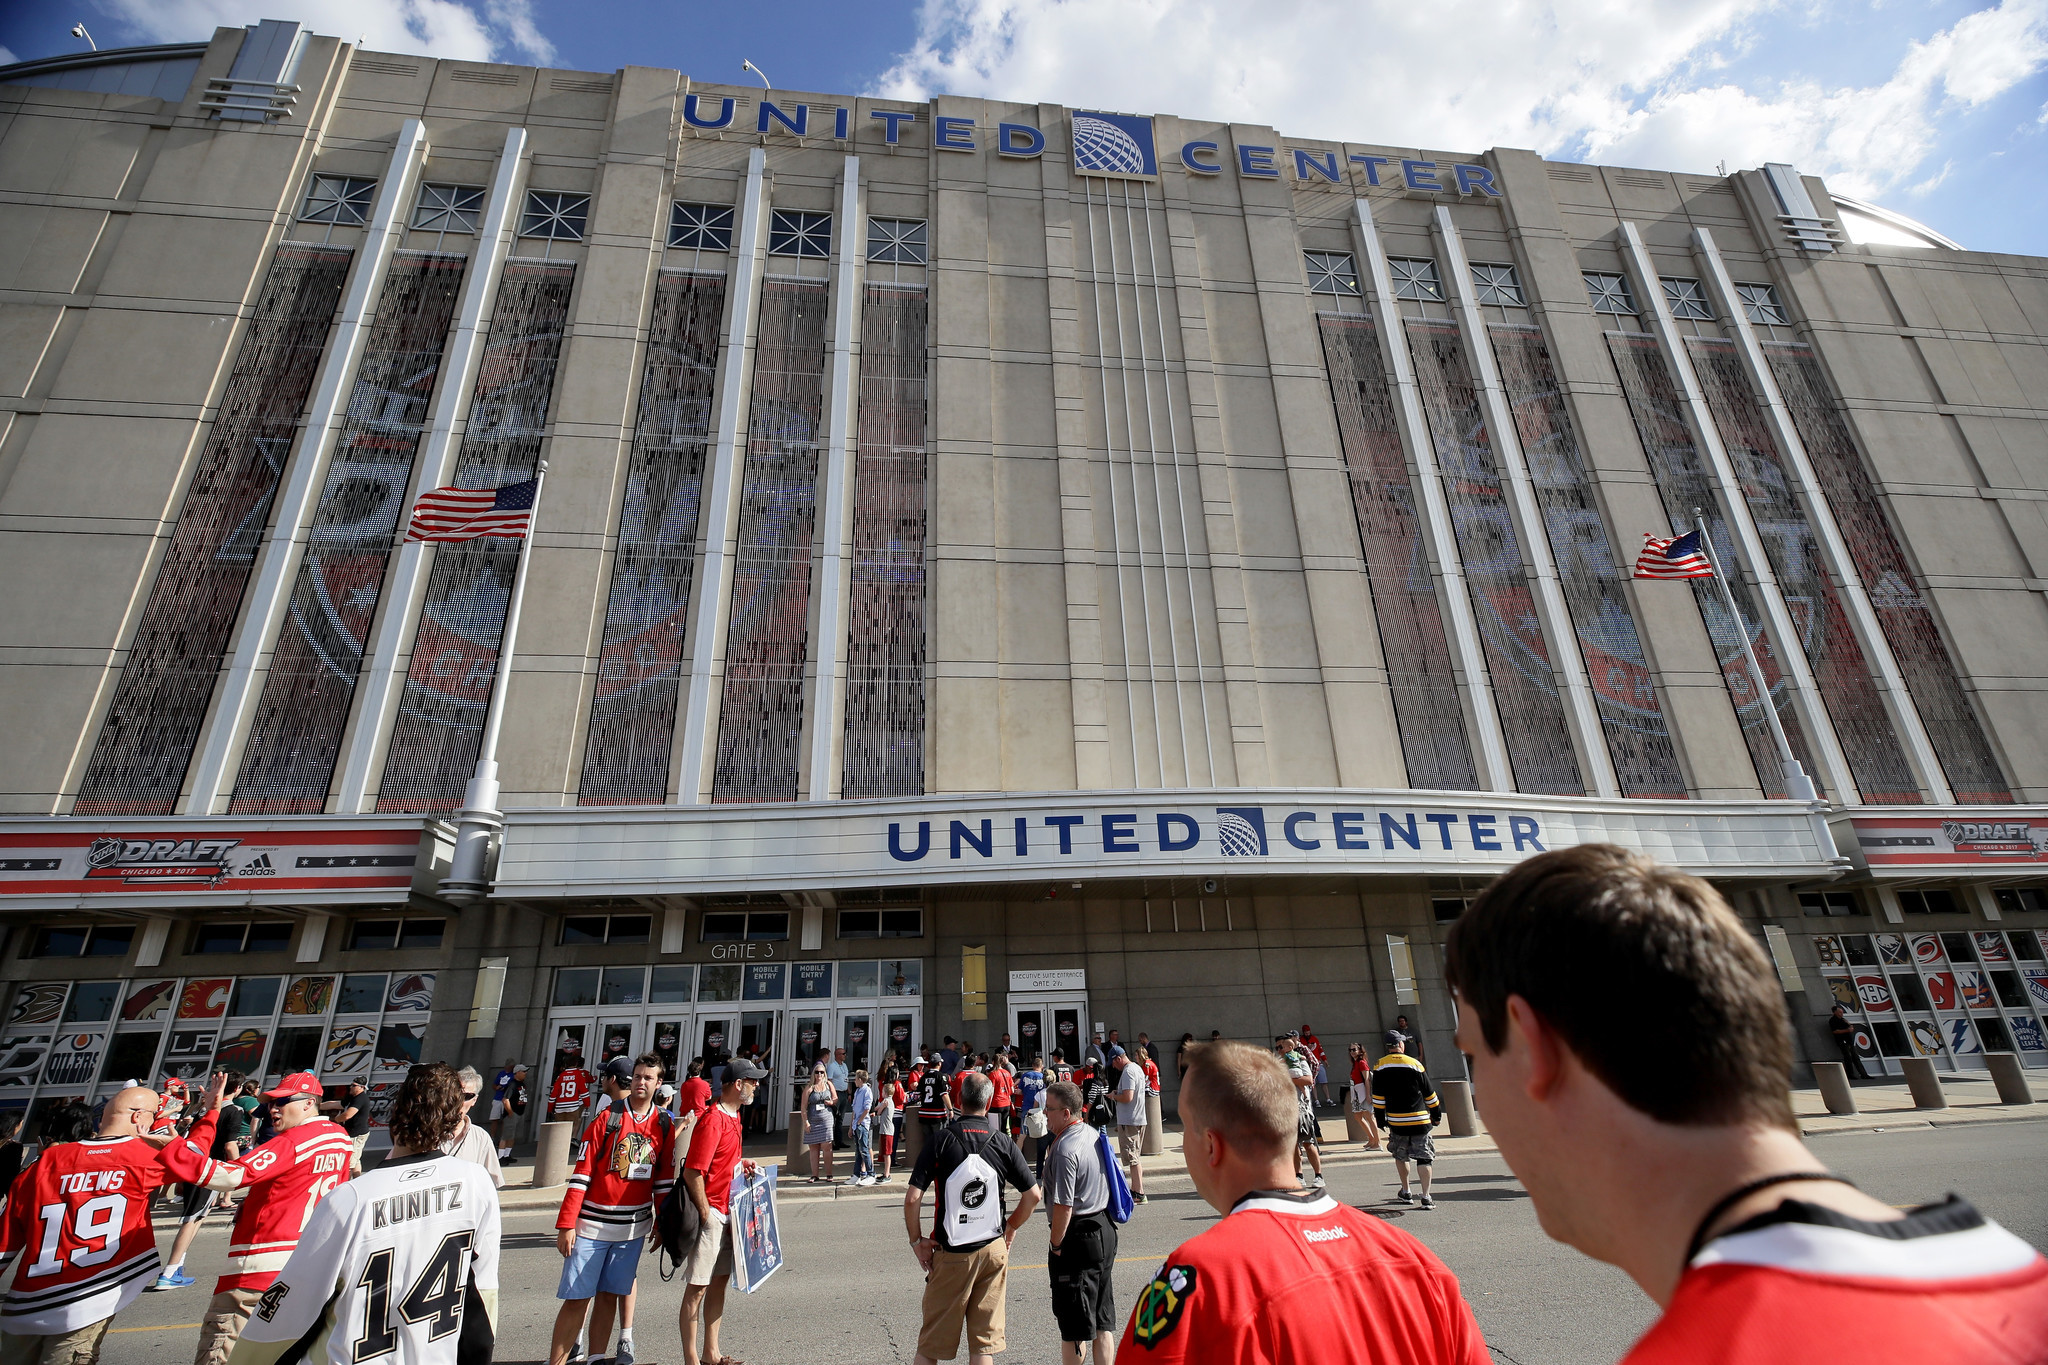 City workers gave out free street parking to friends during Blackhawks, Bulls games